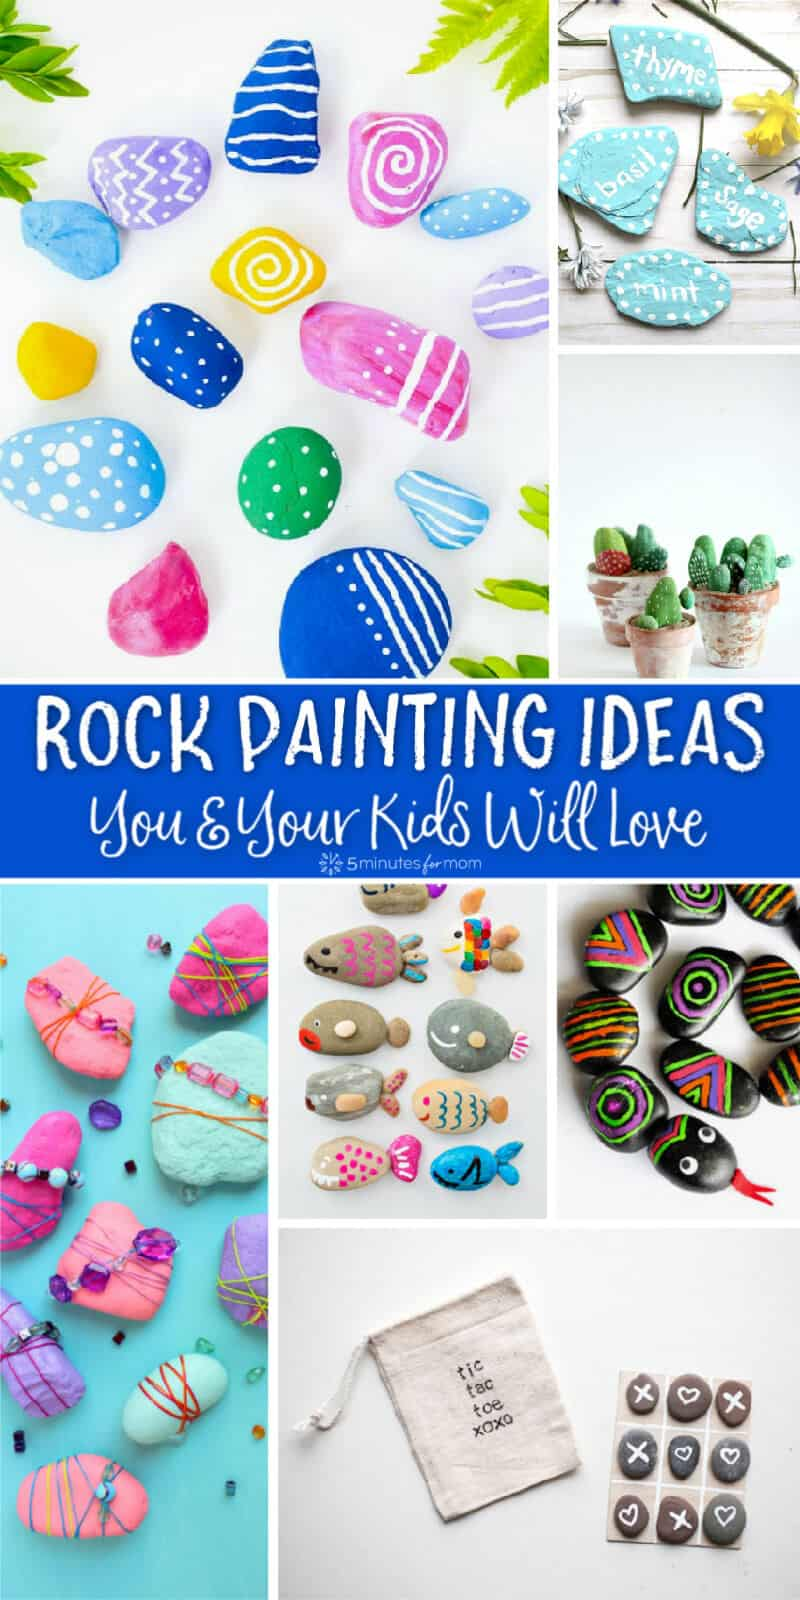 Rock Painting Ideas You and Your Kids Will Love